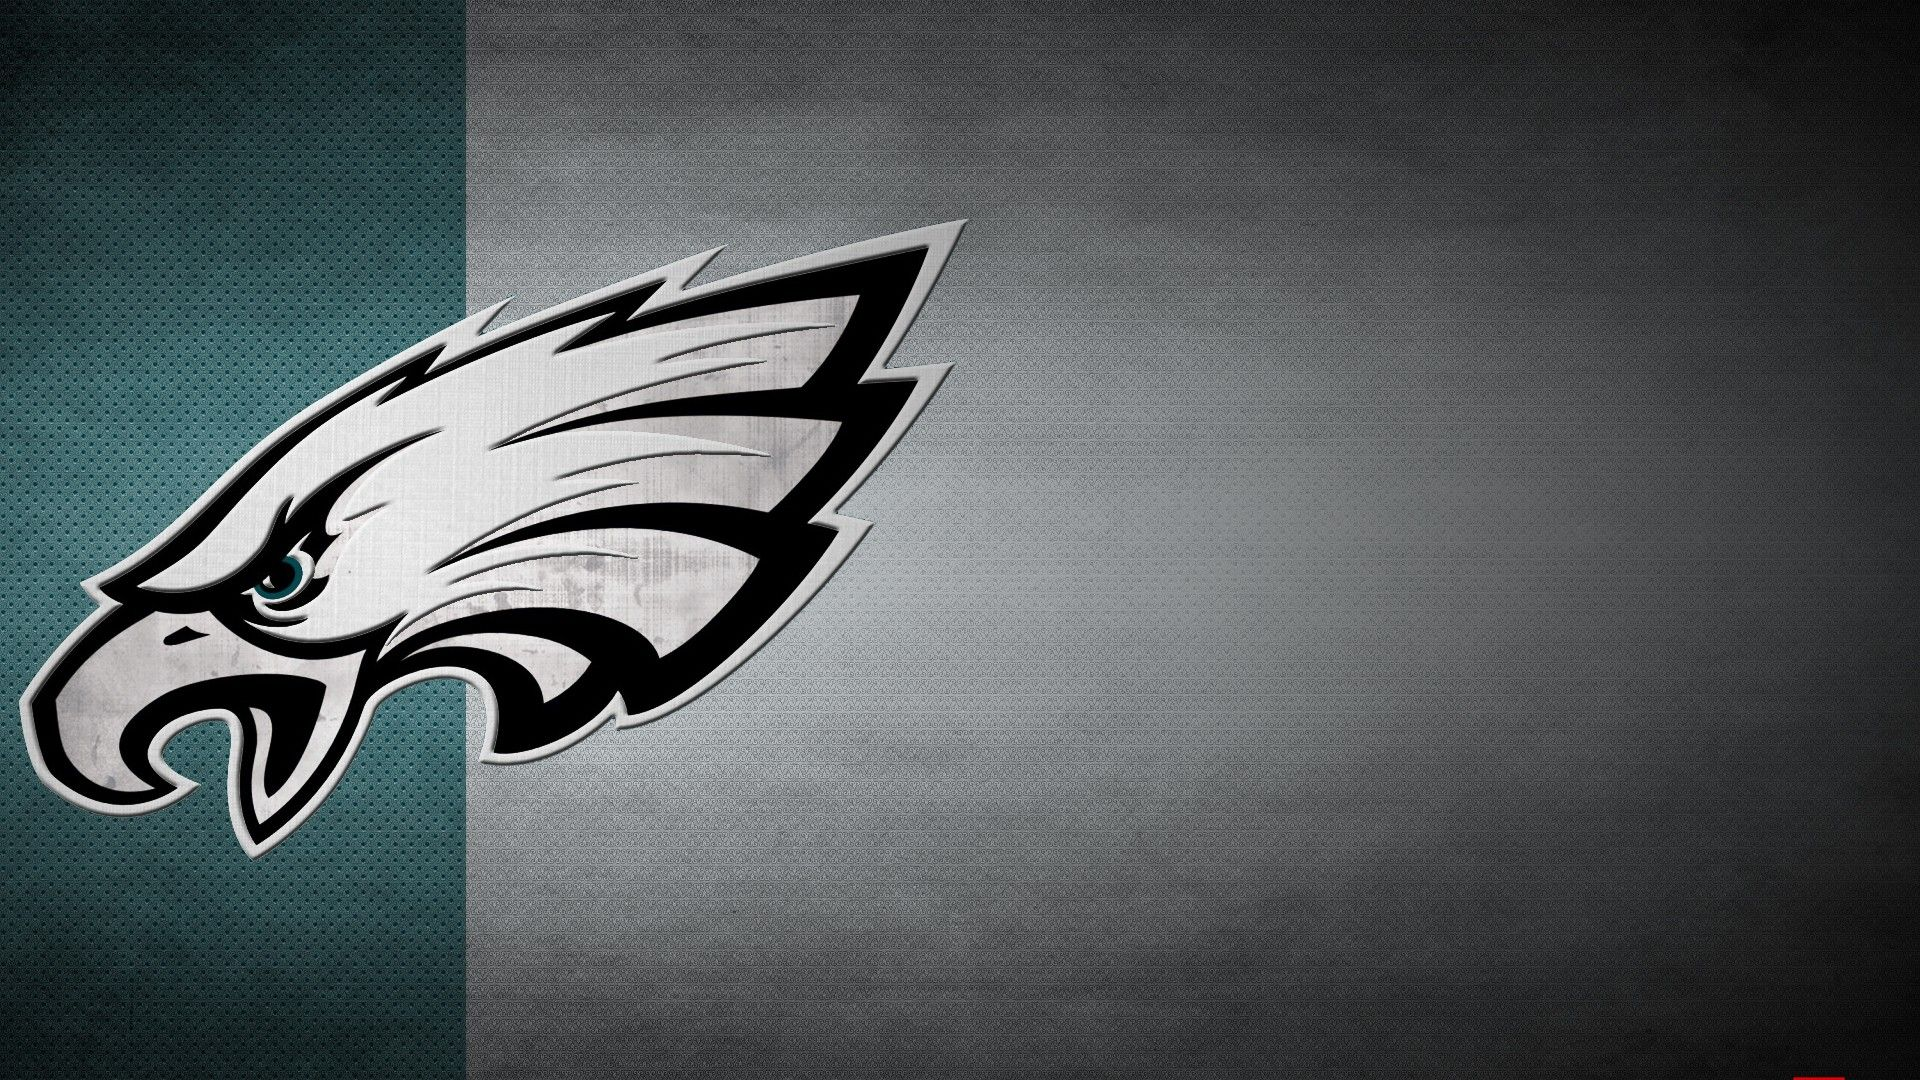 Eagles Backgrounds Hd 2020 Nfl Football Wallpapers Philadelphia Eagles Wallpaper Football Wallpaper Nfl Football Wallpaper